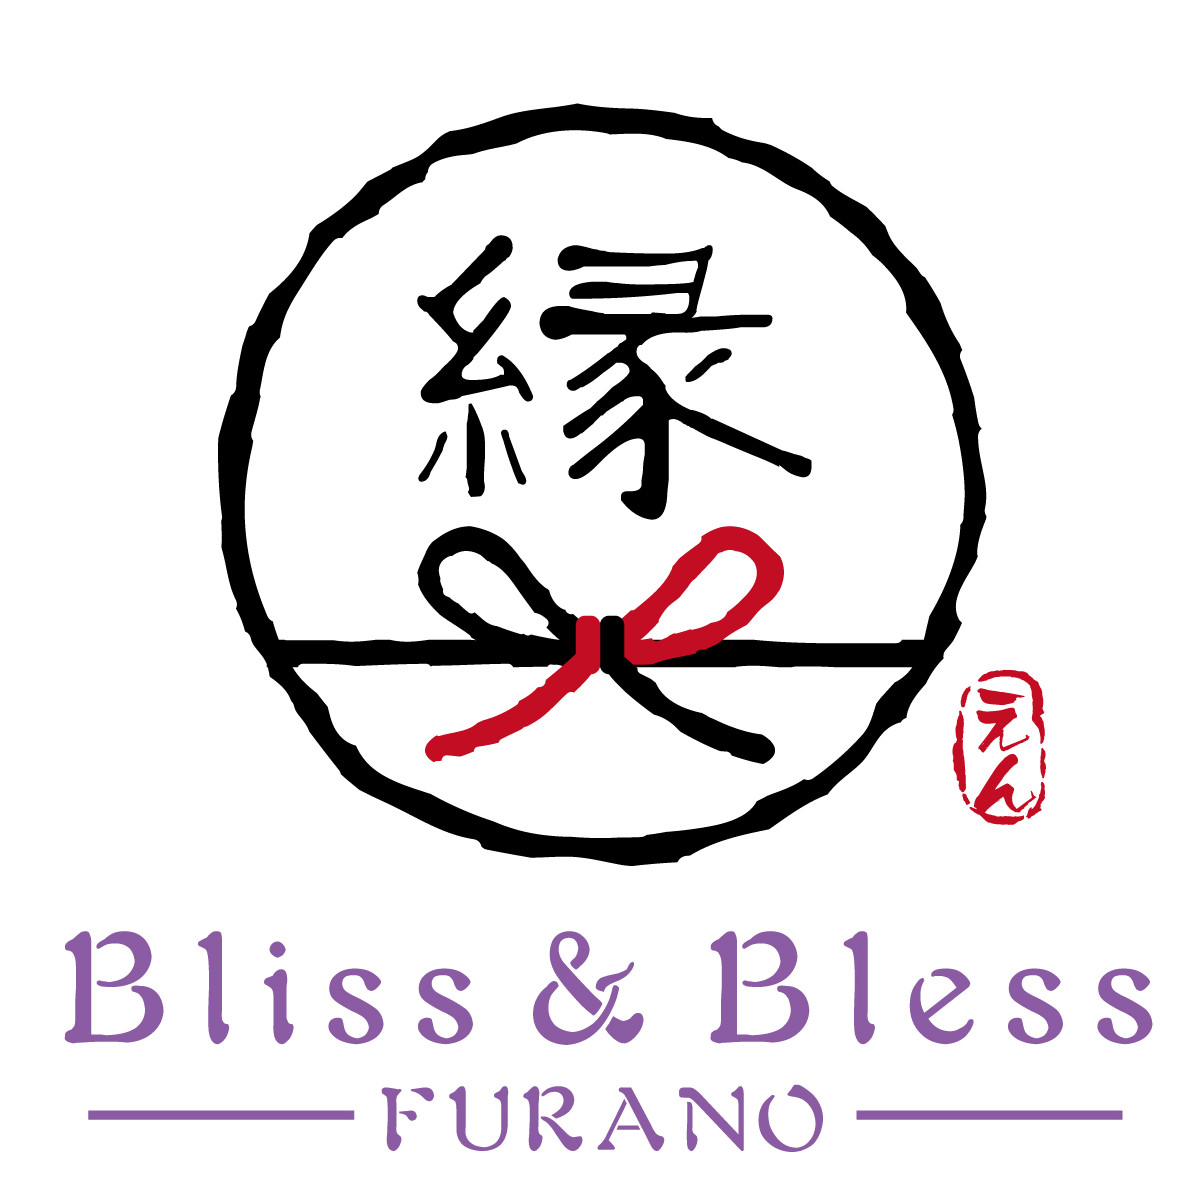 Bliss & Bless Furano